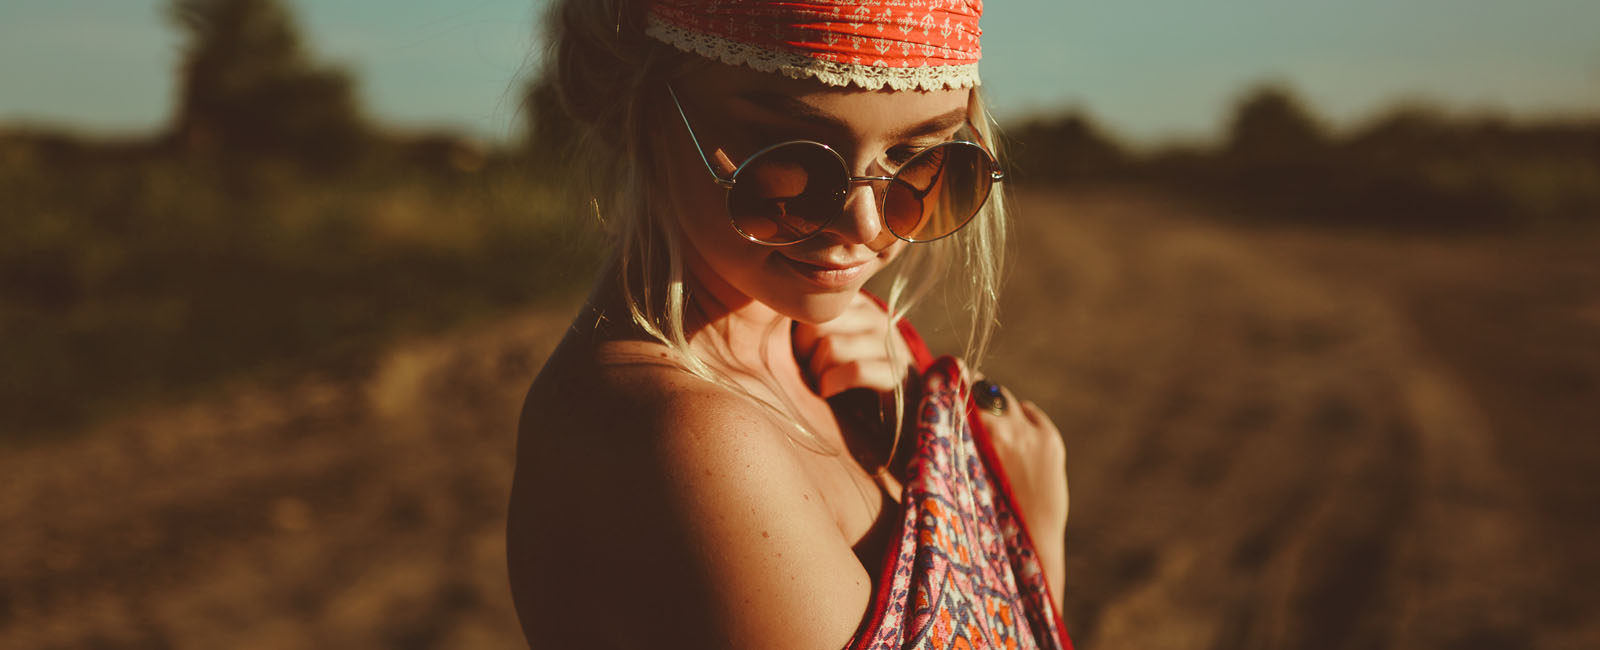 girl wrapped in scarf wearing sunglasses in desert